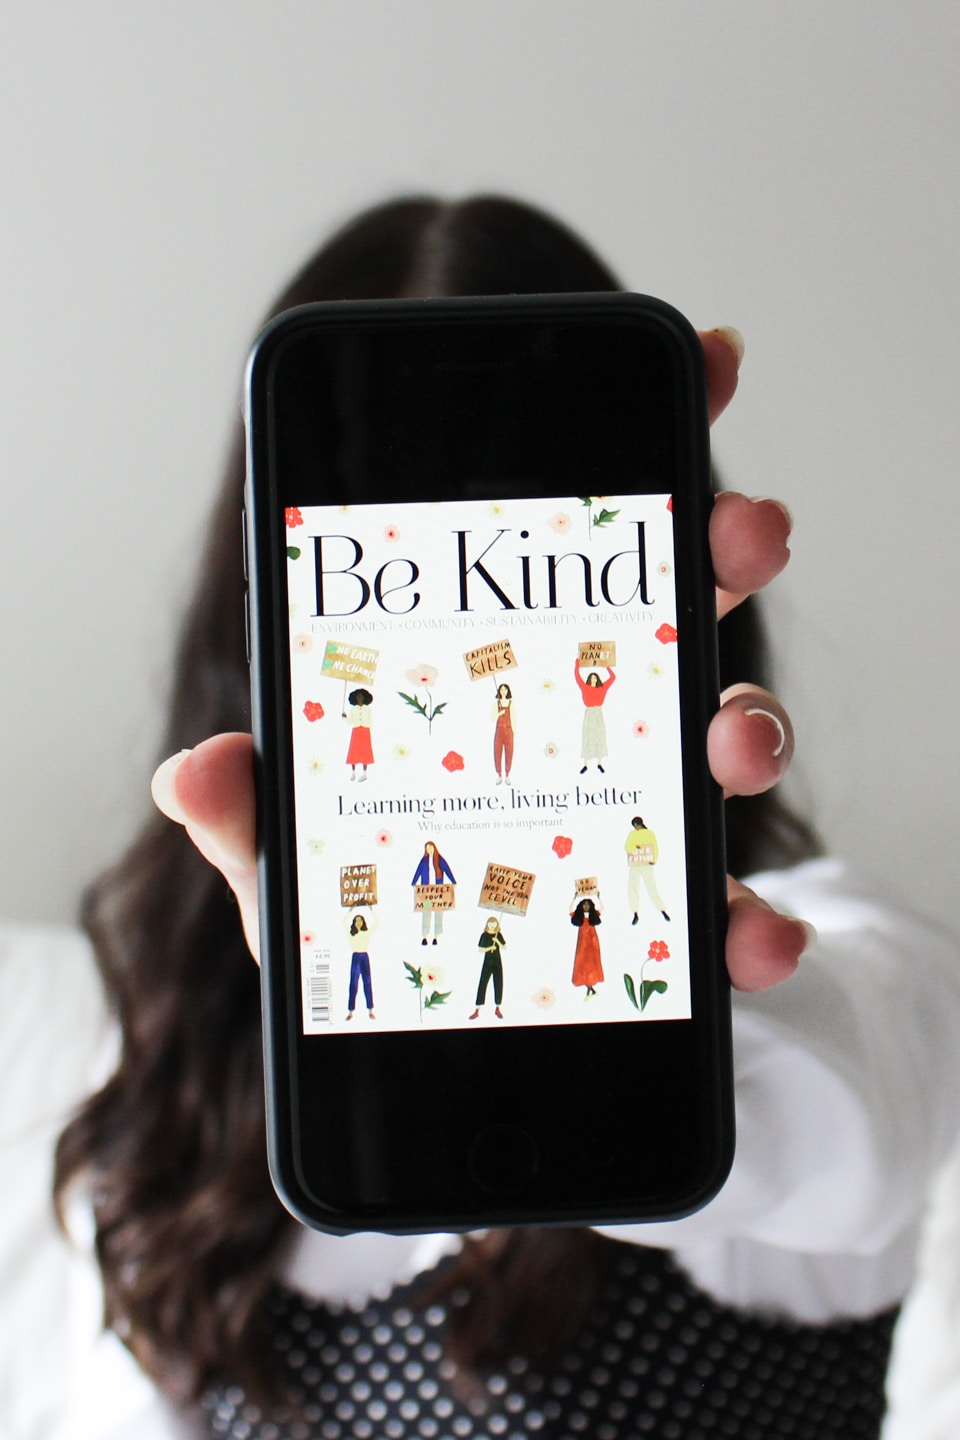 Be Kind Magazine on Readly App